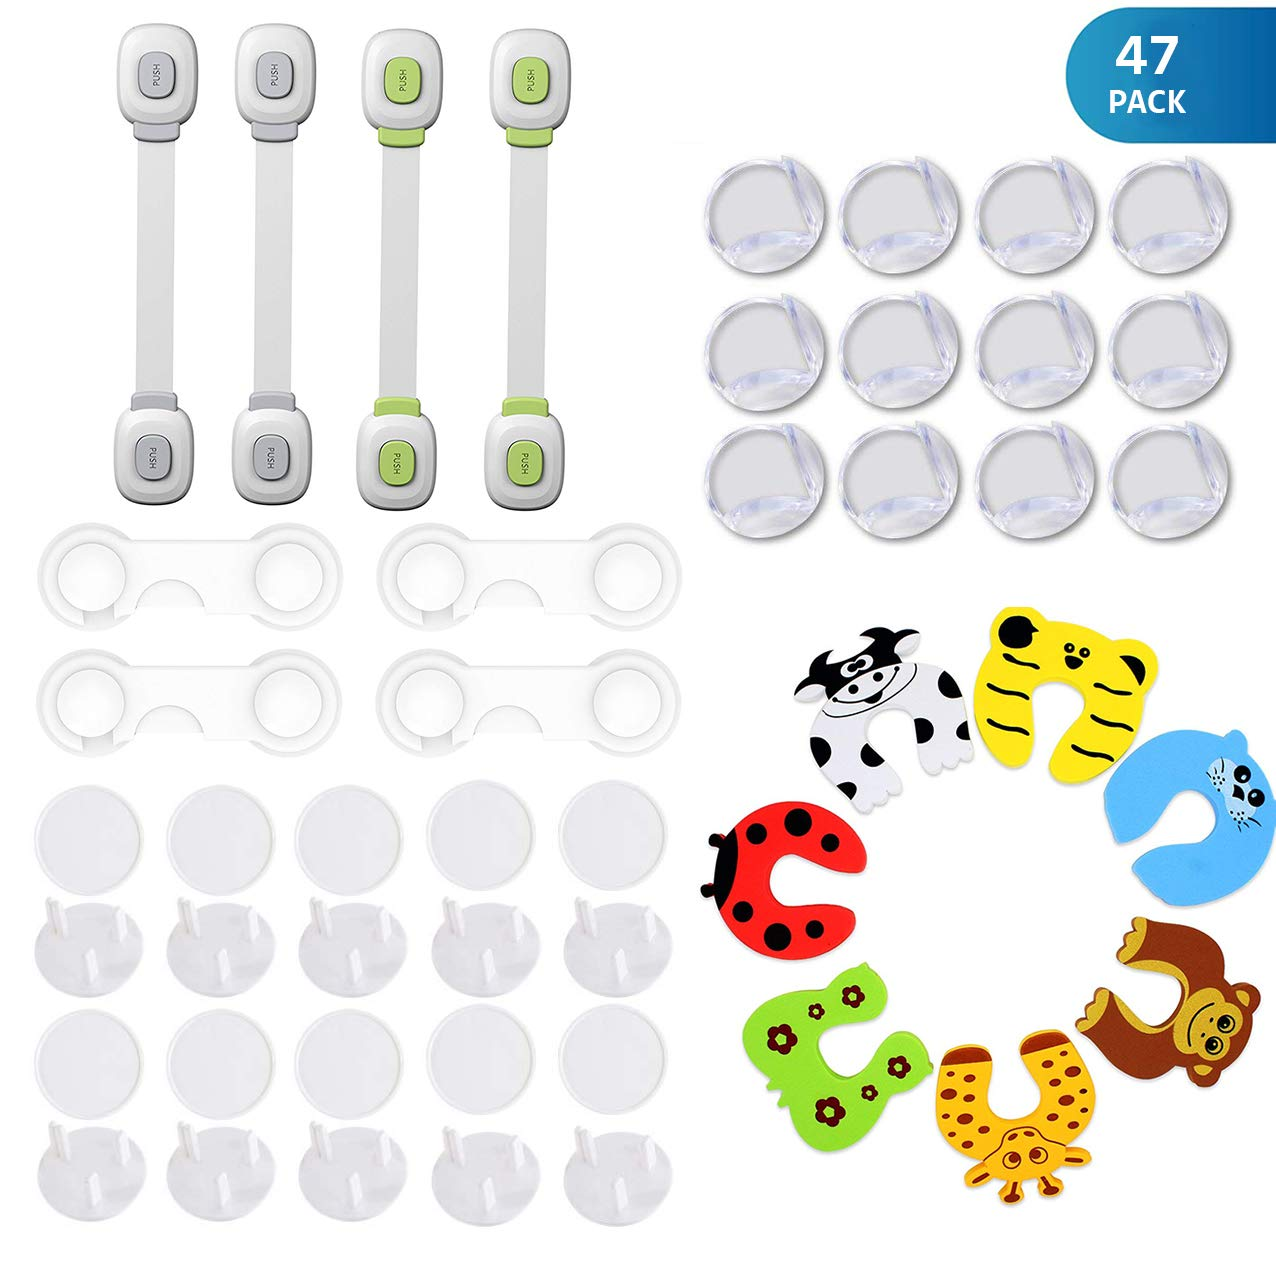 Baby Proofing, Child Safety Kit 37 Piece - 10 Magnetic Cabinet Locks+2 Keys, 12 Clear Corner Protectors, 4 Cabinet Strap Locks, 4 Cupboard Locks, 7 Cute Foam Door Stoppers, No Drill Required Baby Proof Set bejase